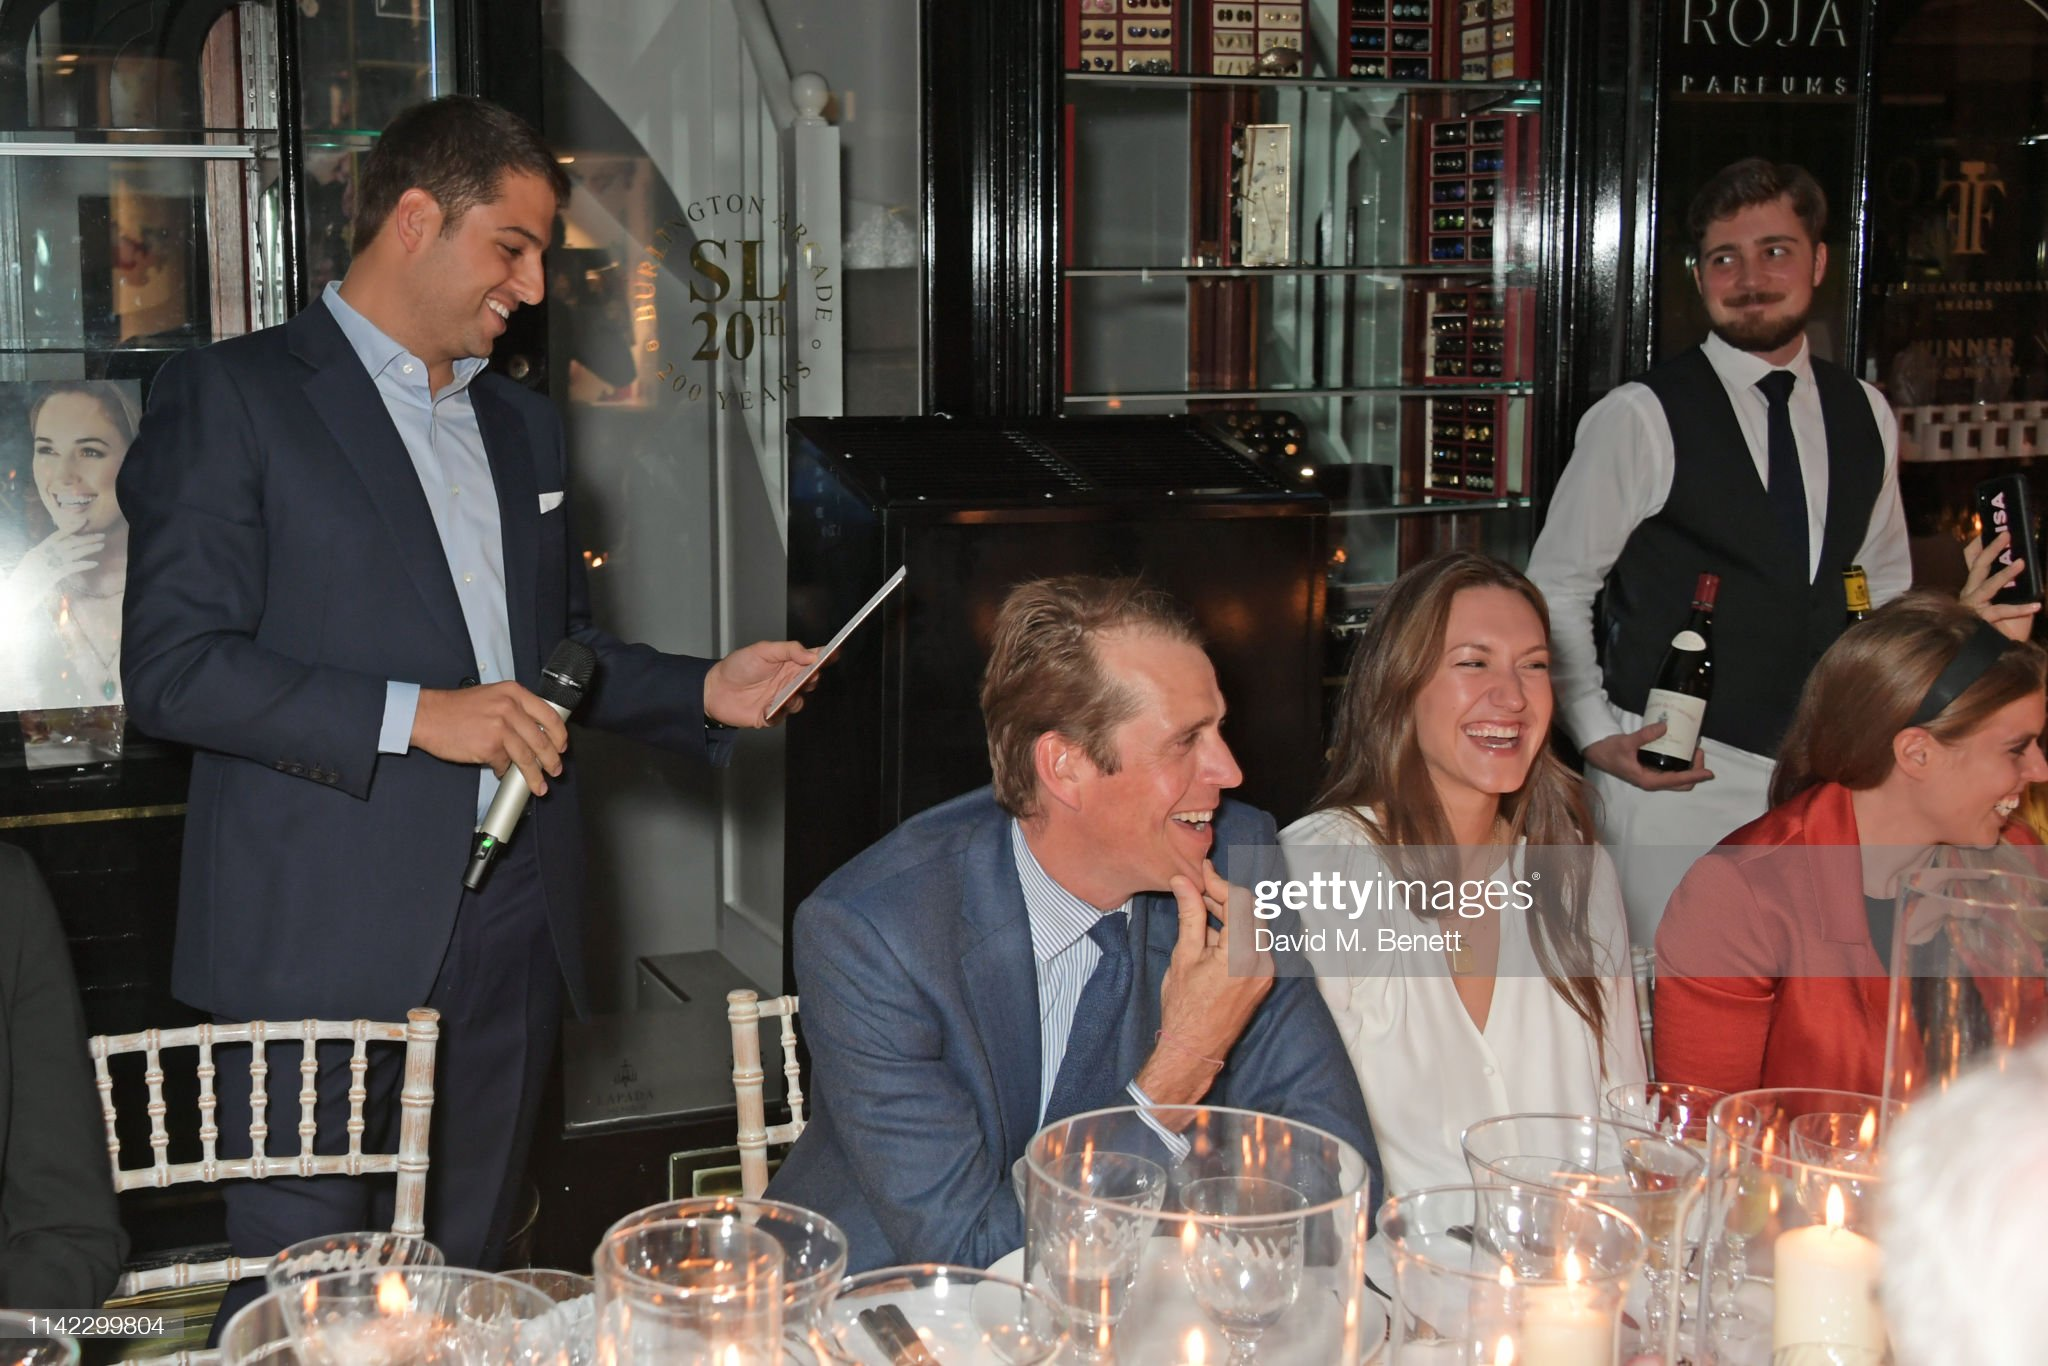 https://media.gettyimages.com/photos/jamie-reuben-ben-elliot-maryclare-winwood-and-princess-beatrice-of-picture-id1142299804?s=2048x2048